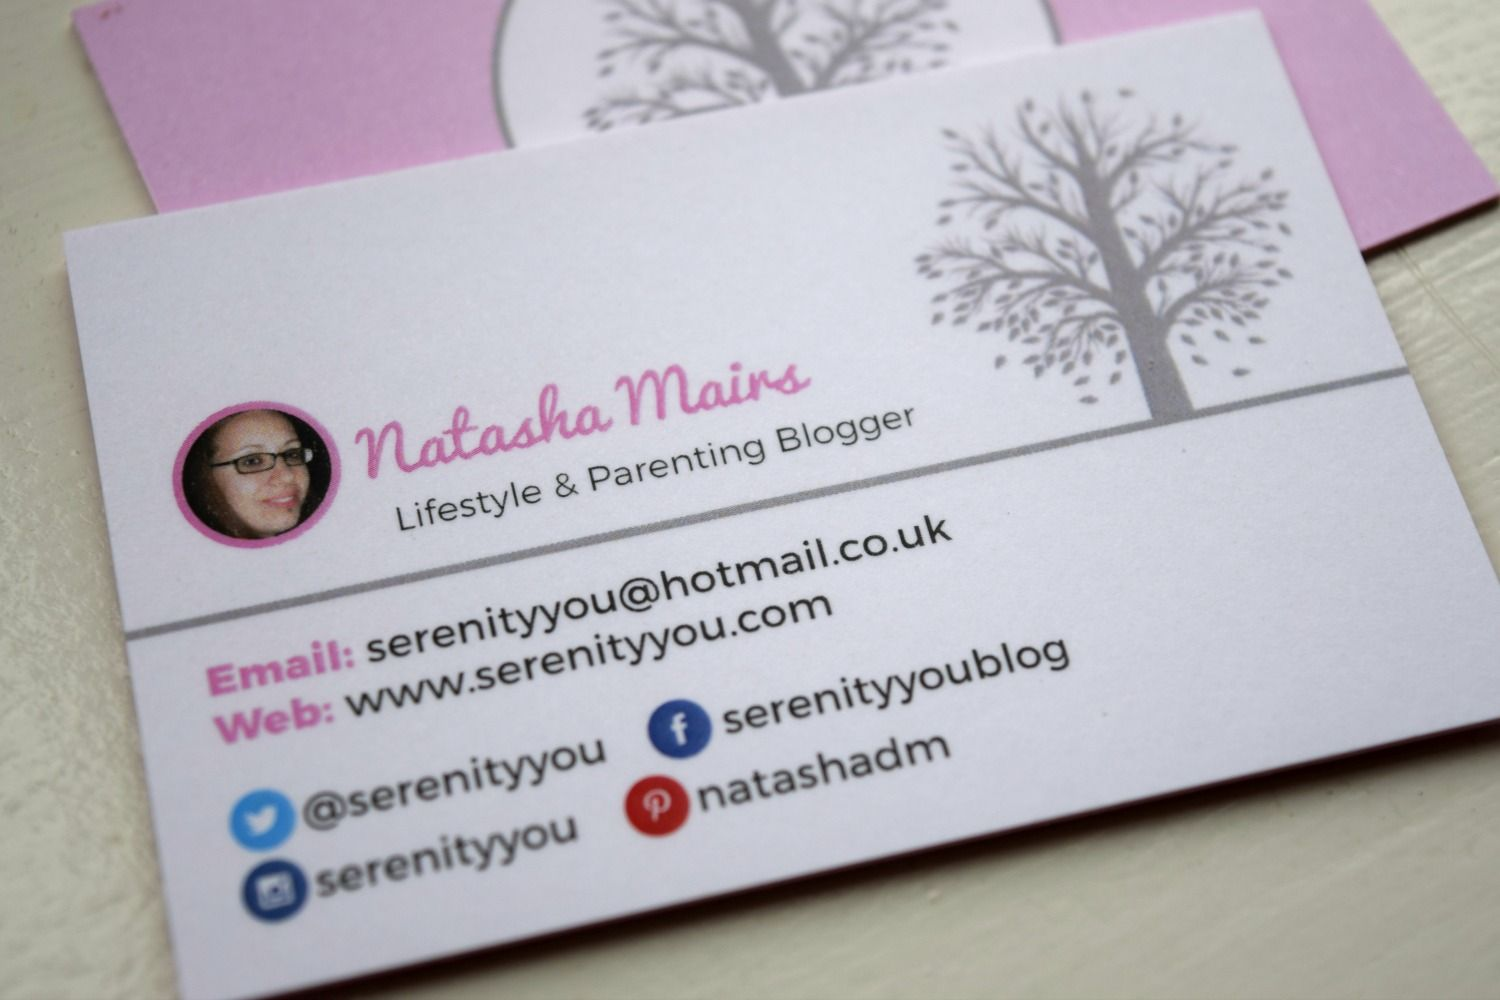 My New Business Cards From Auraprint Serenity You Business Blog Parenting Blog About Me Blog